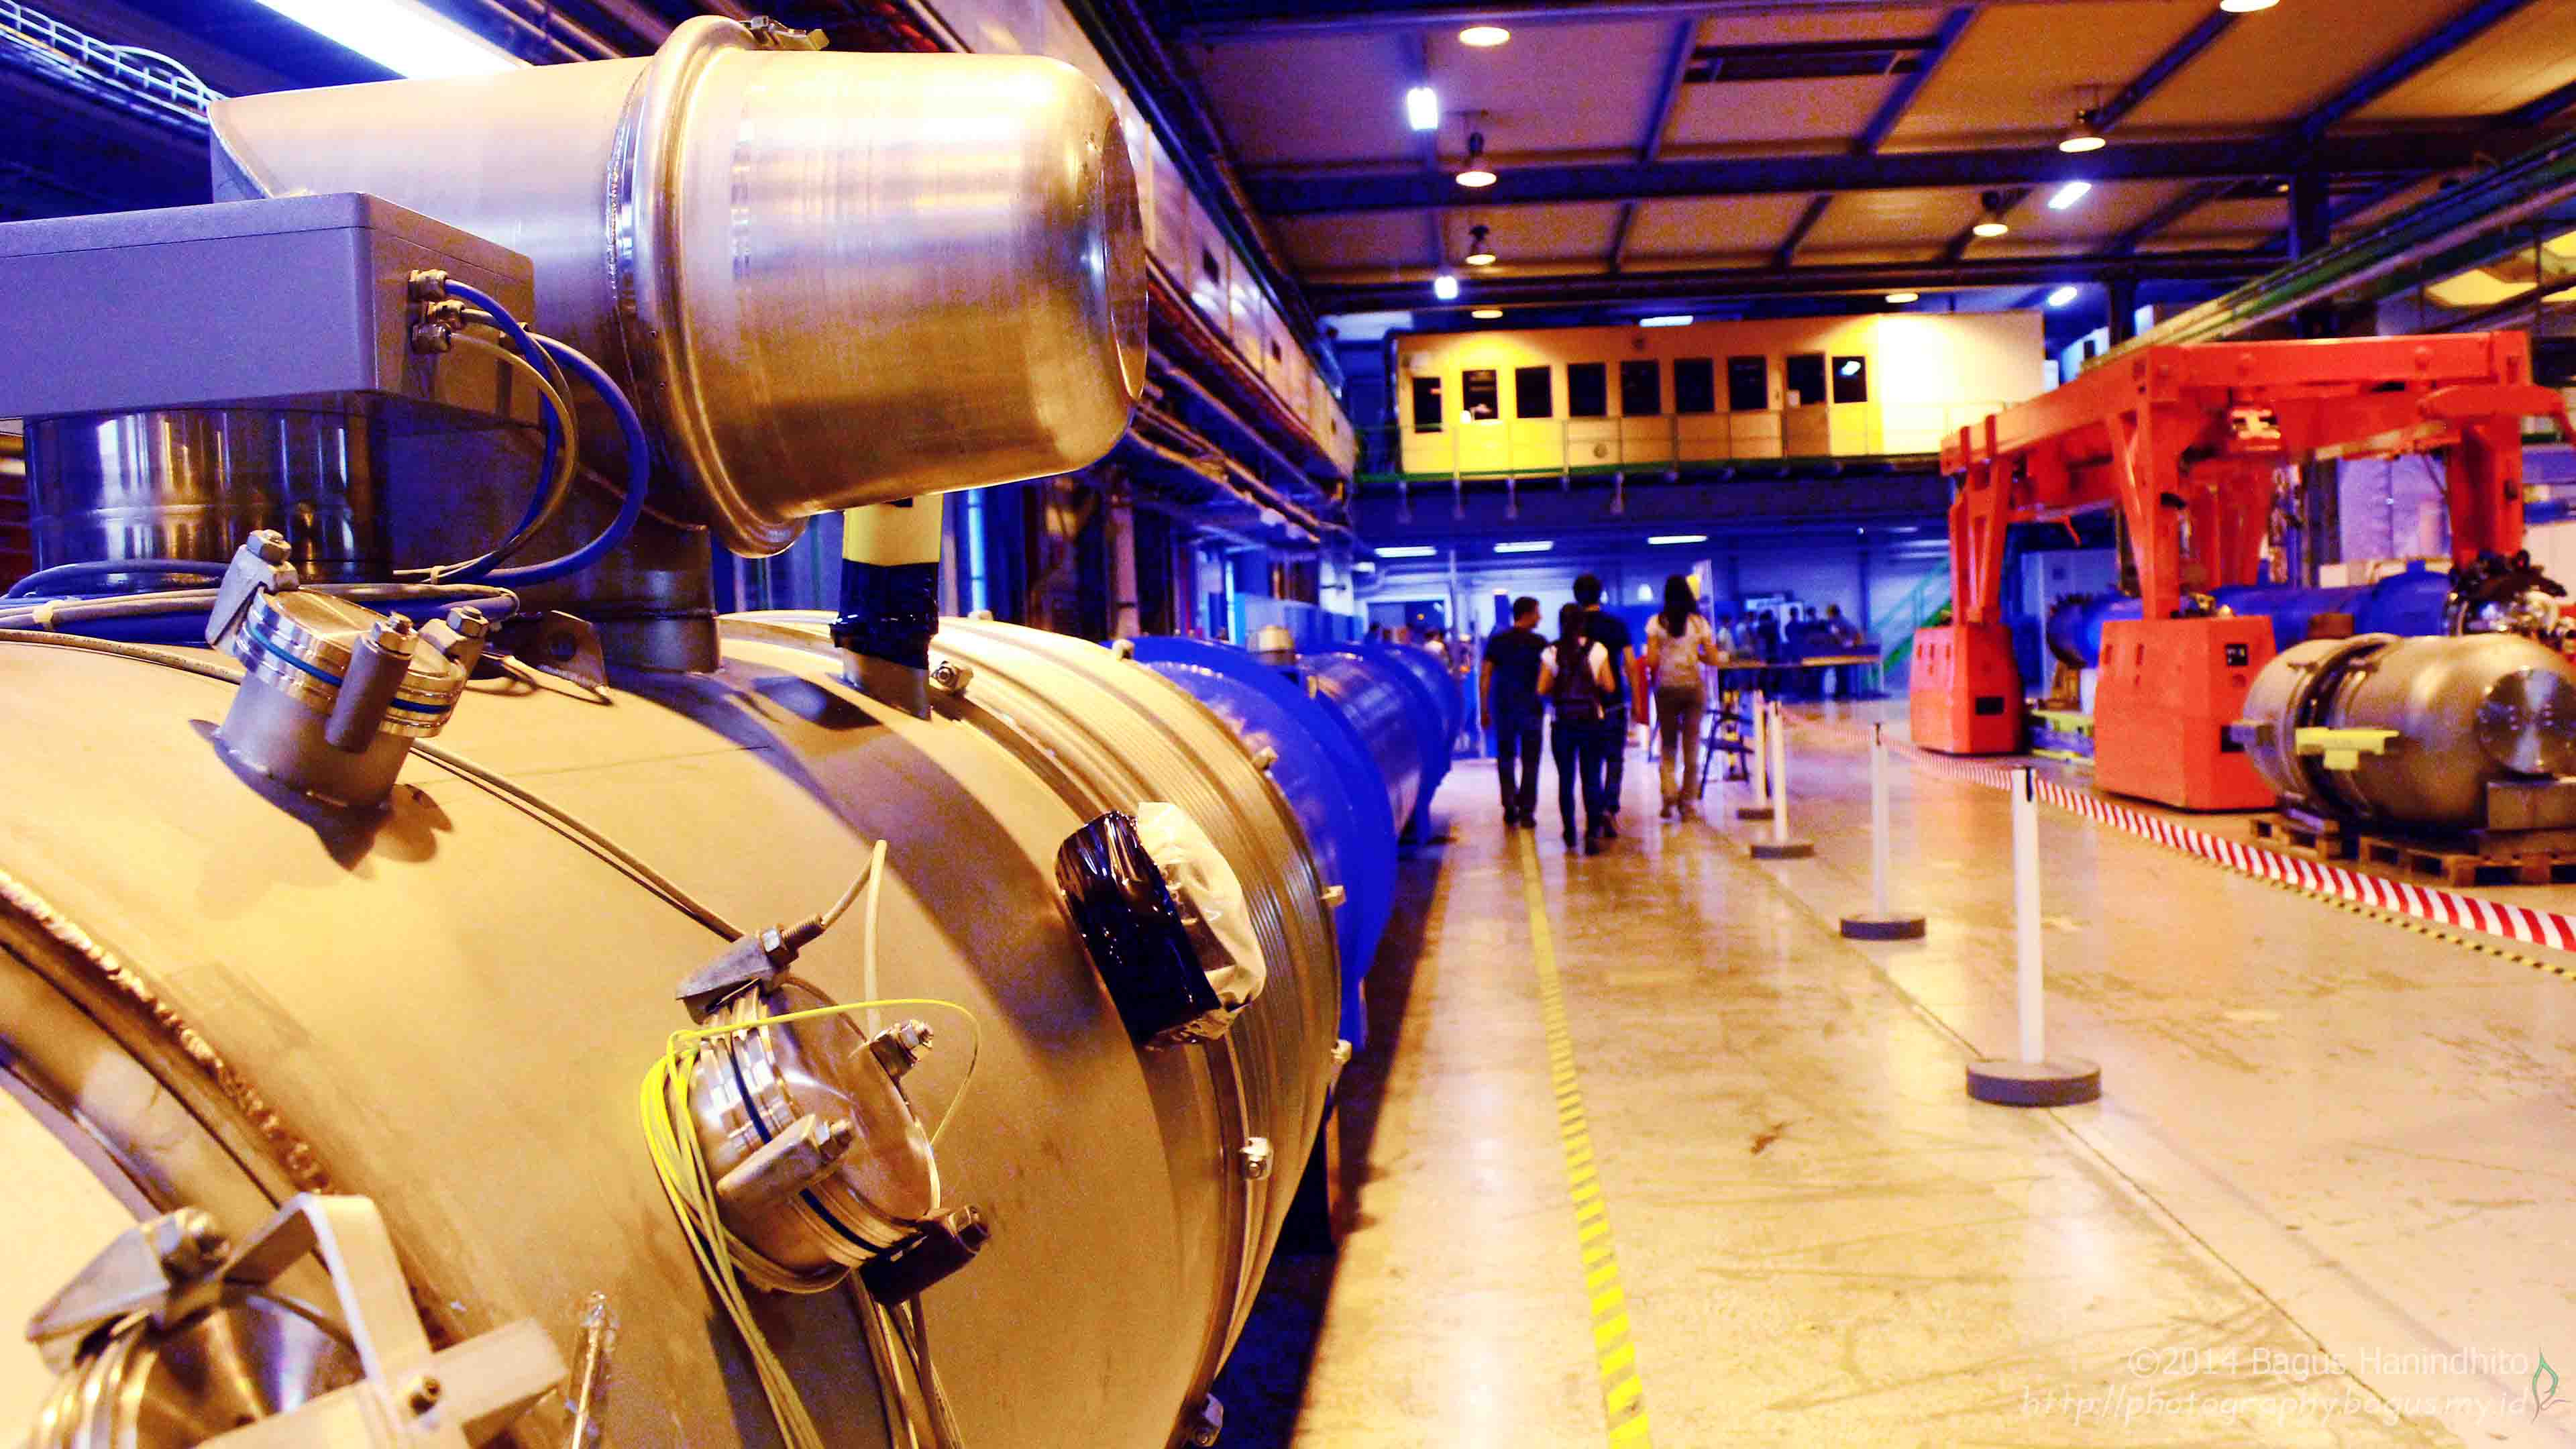 One of the LHC Magnet for exhibition at CERN SM18 Cryogenic Test Facilities